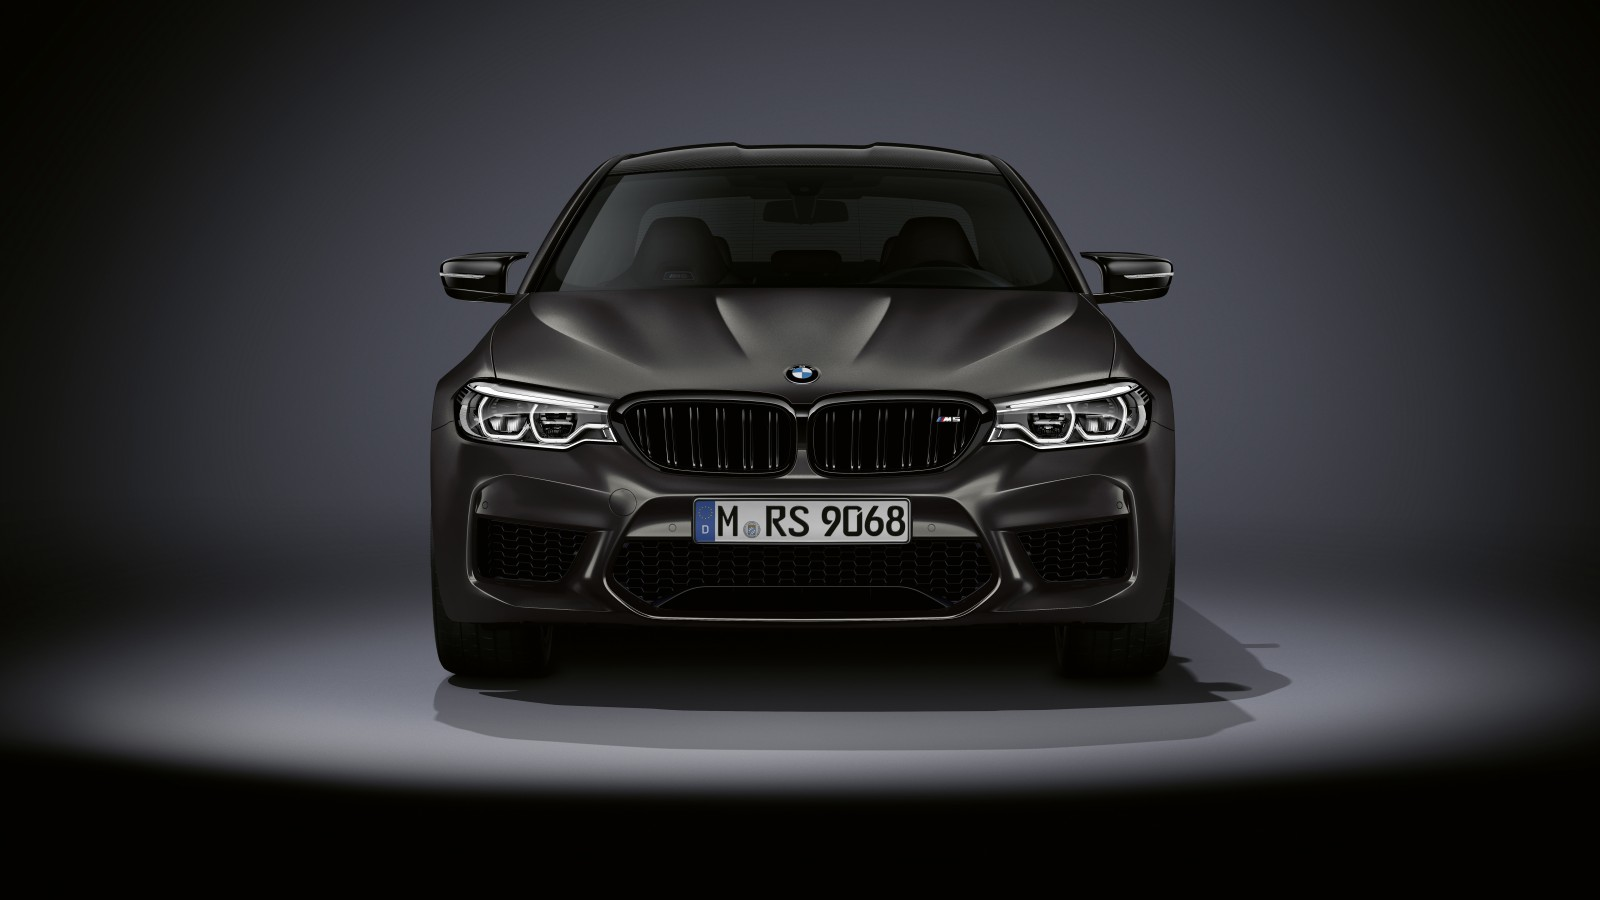 Bmw M5 Competition Edition 35 Jahre 2019 4k 8k Wallpaper